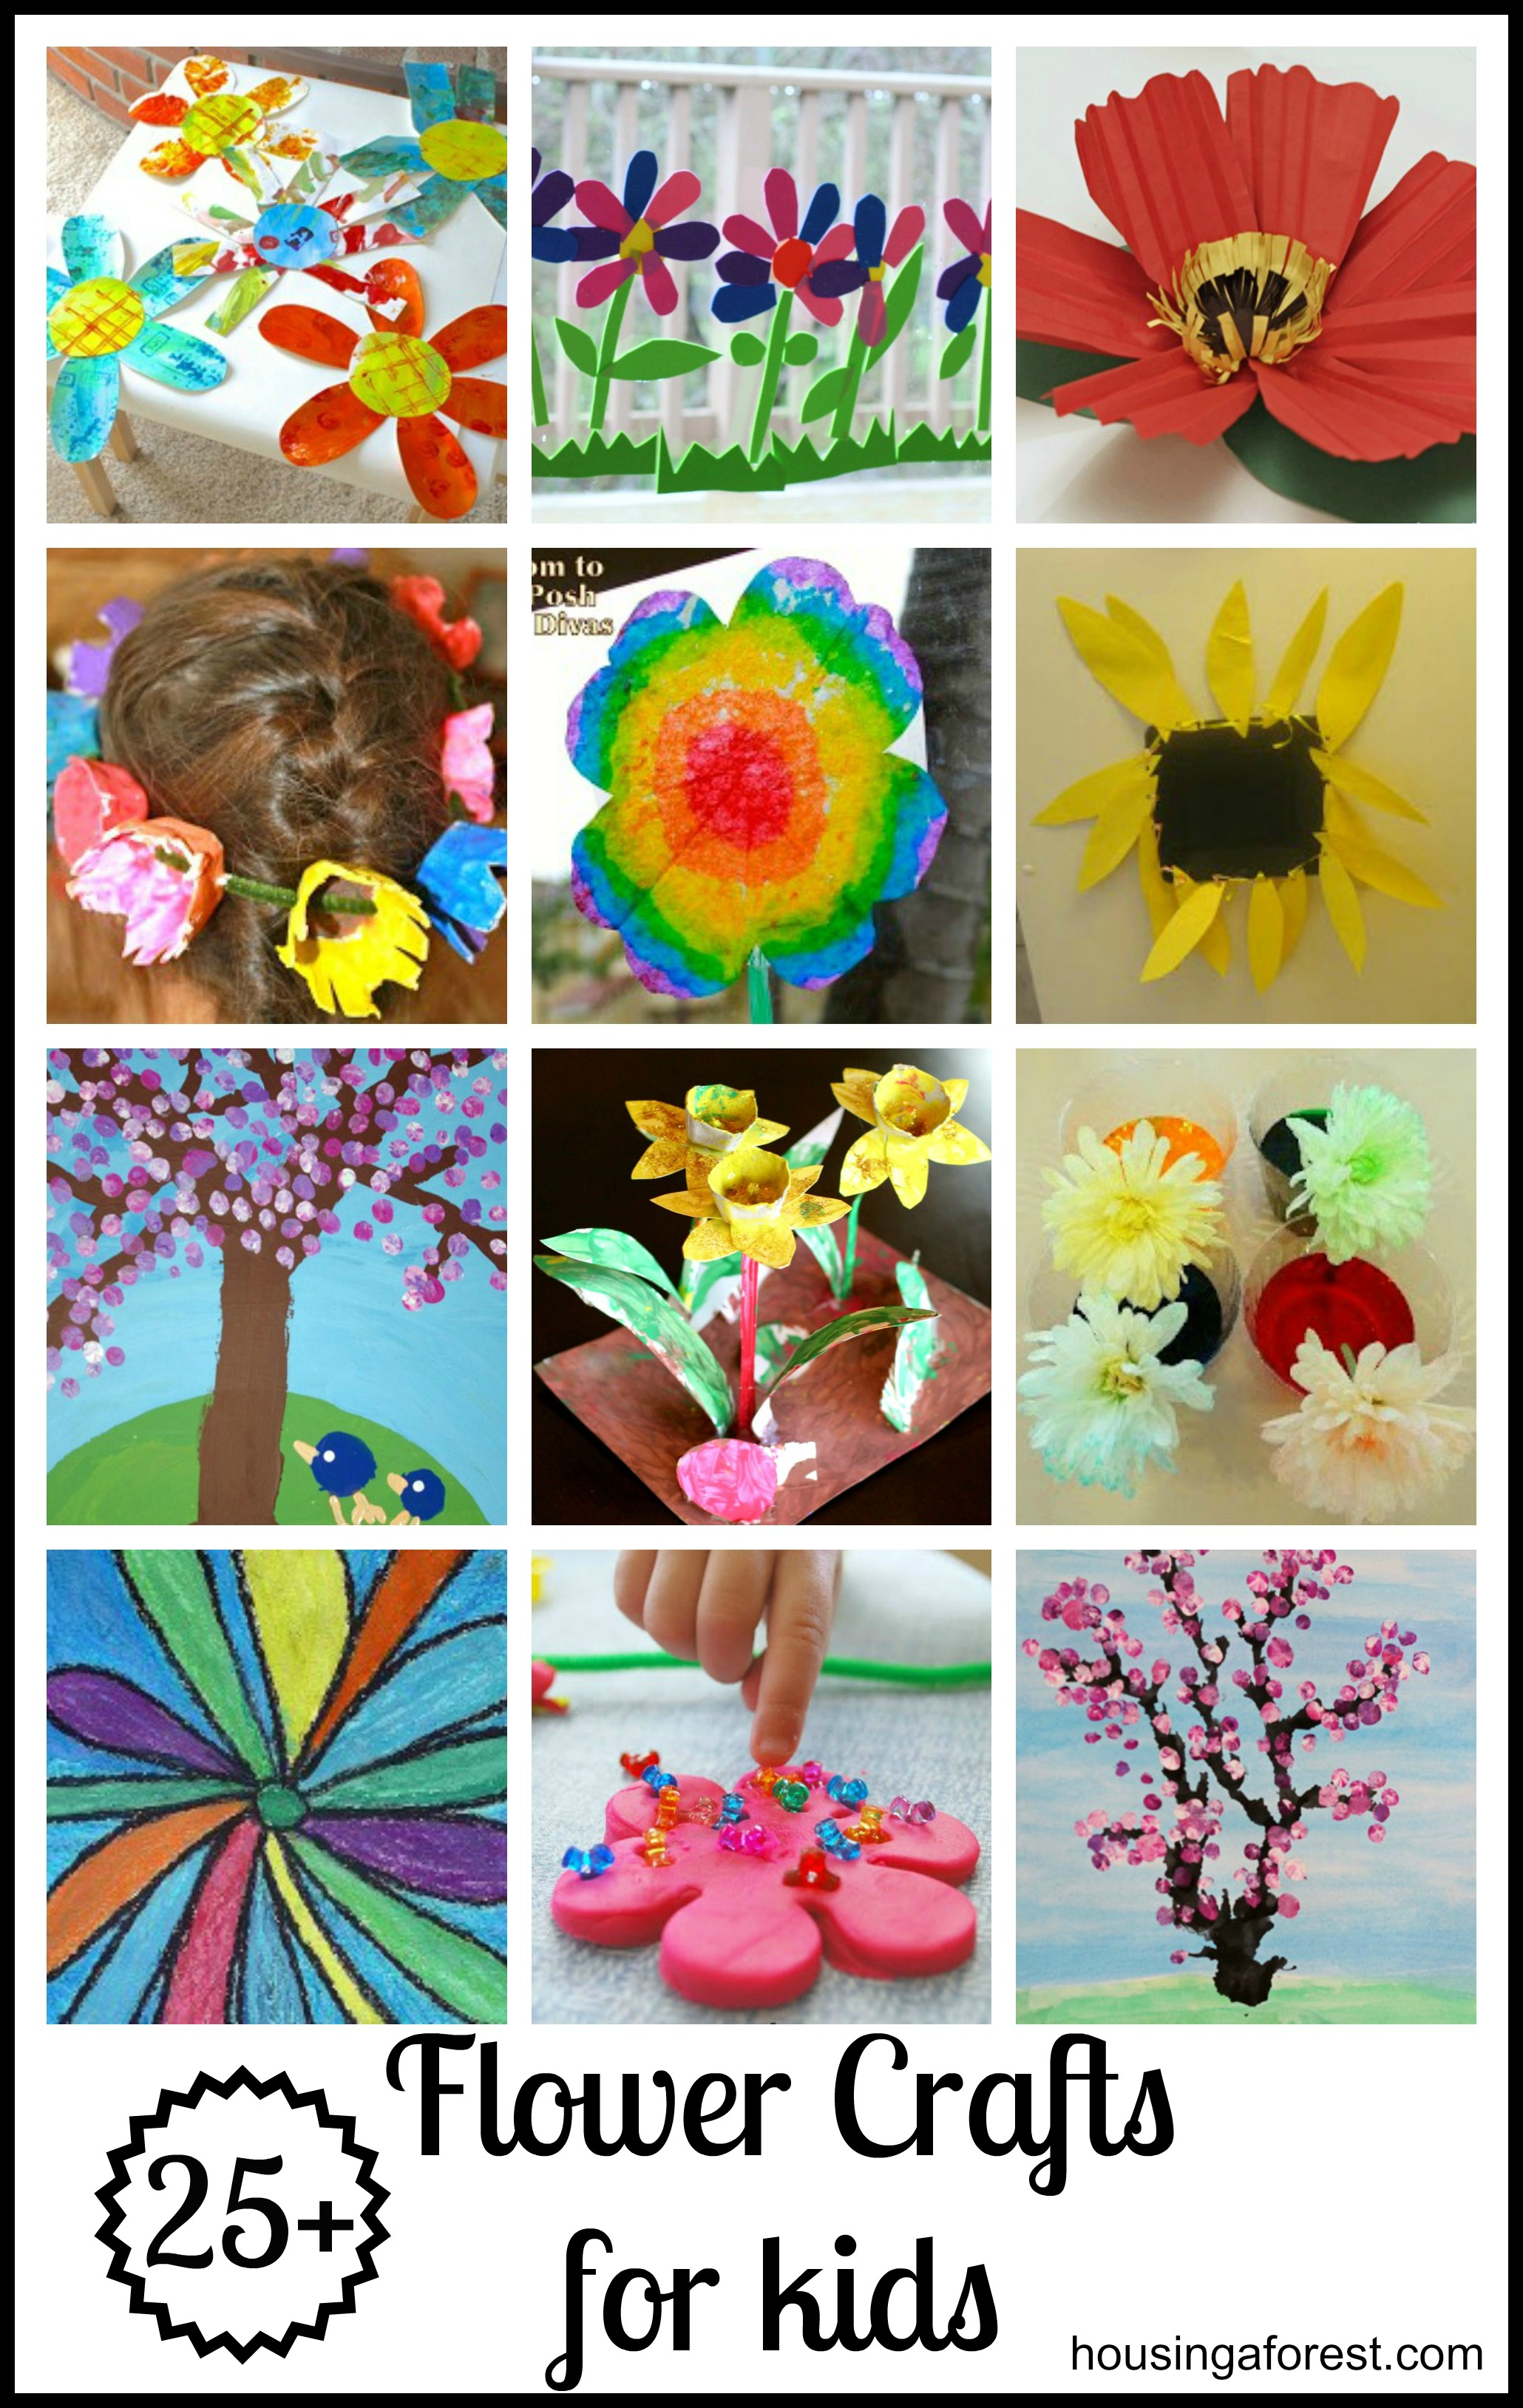 25+ Flower Crafts for kids